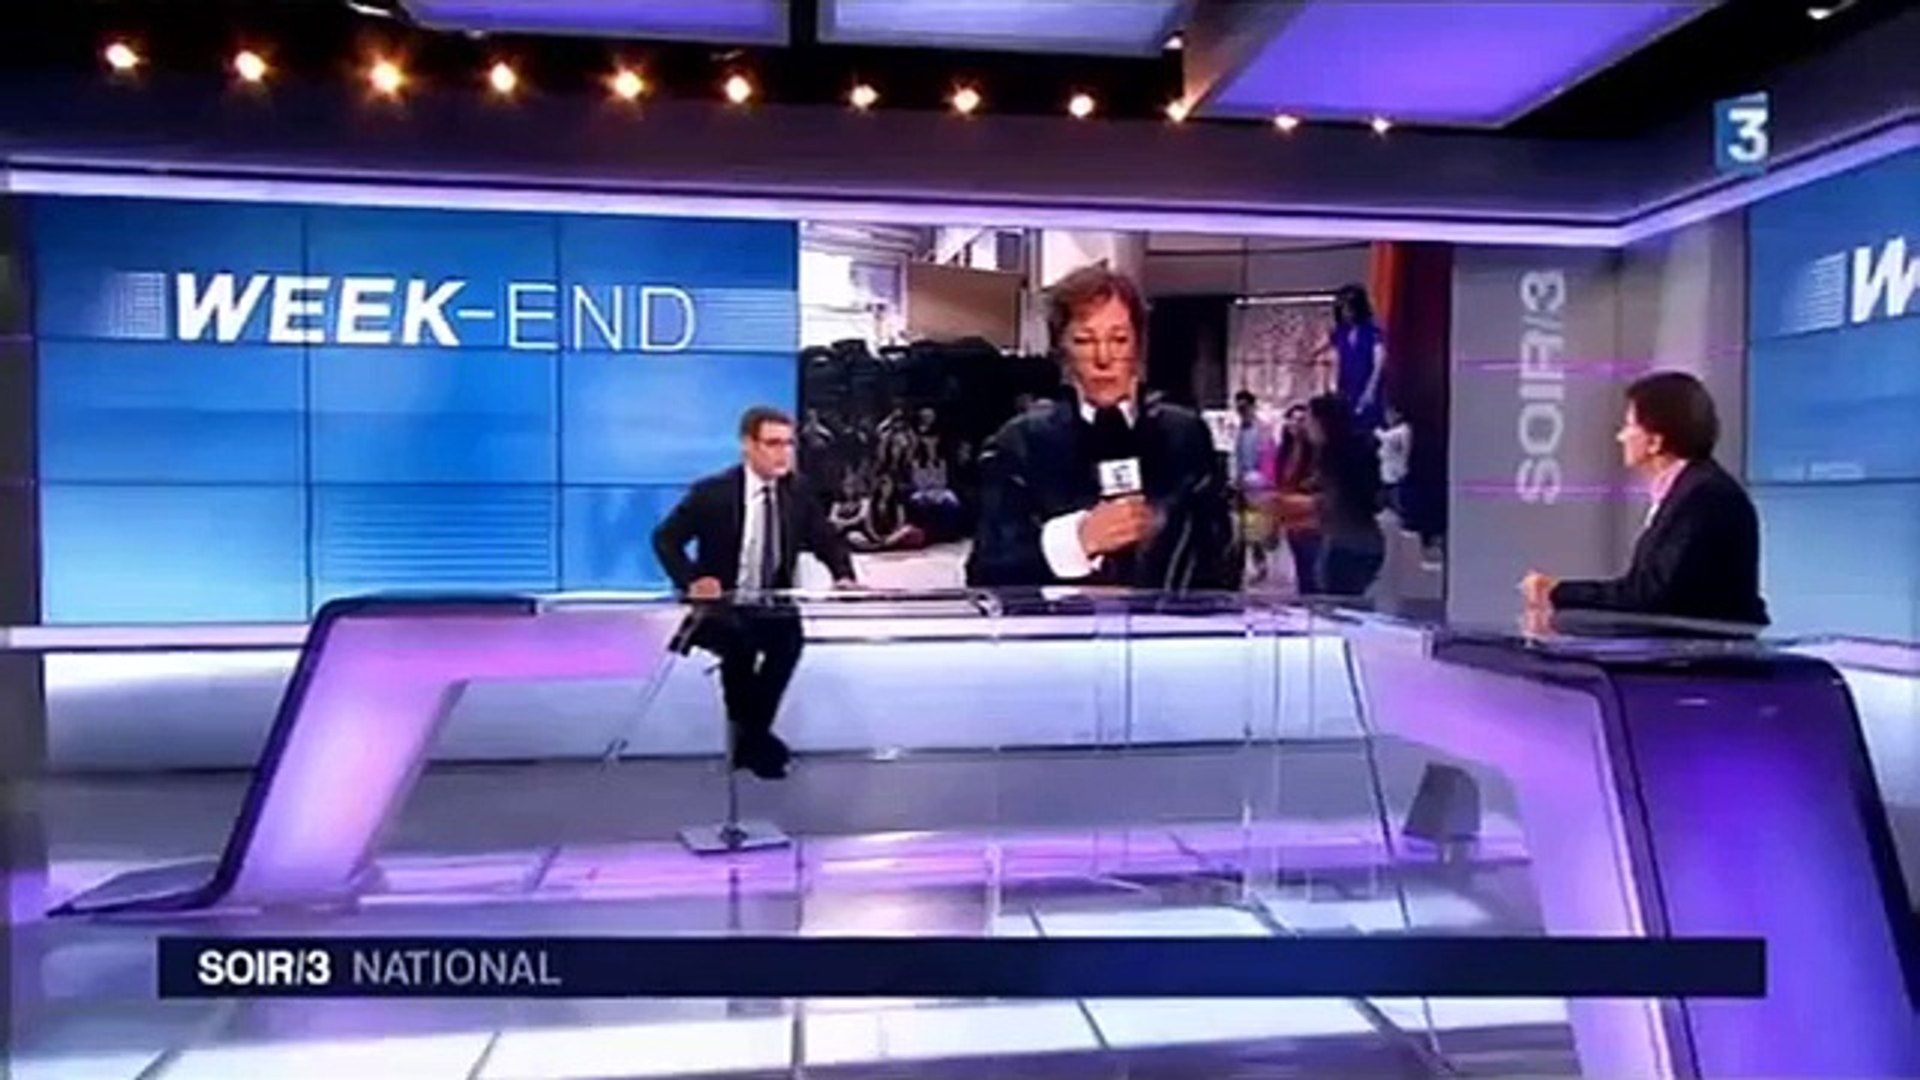 BUZZ NEWS   La journaliste de france 3 embrassee sur la bouche en direct